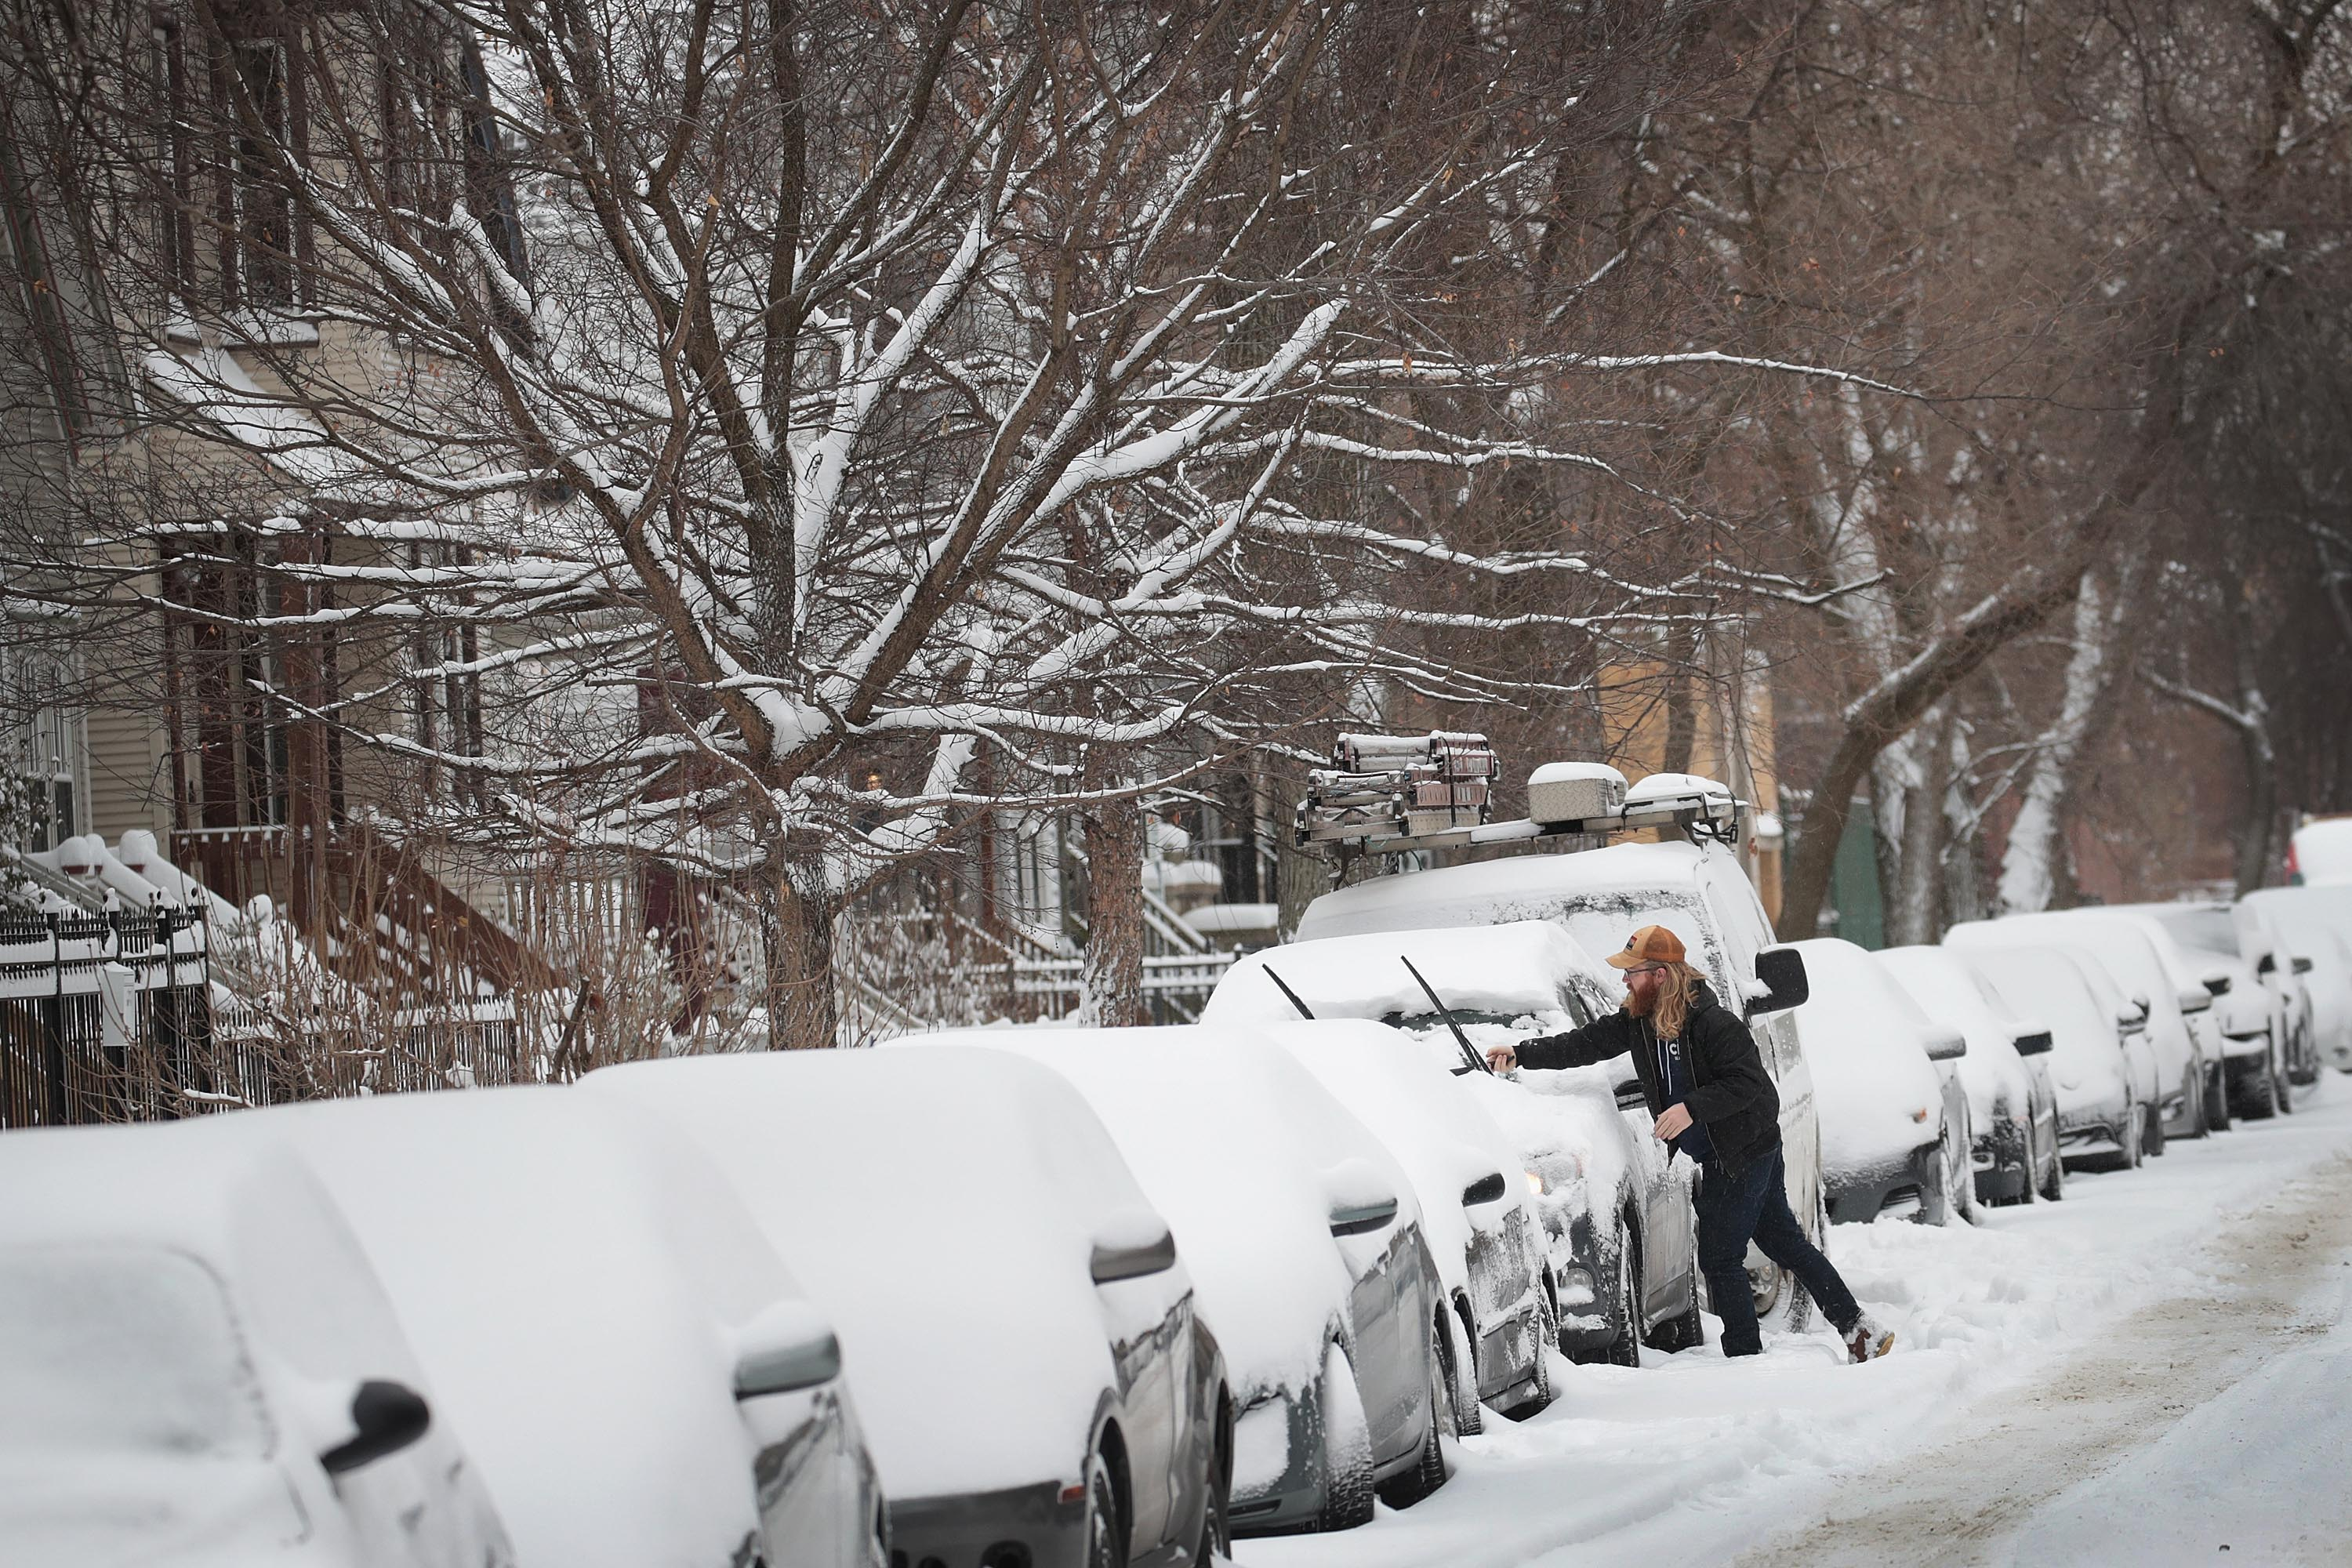 Residents clear up following a snowstorm in the area on January 19, 2019 in Chicago, Illinois | Photo: Getty Images